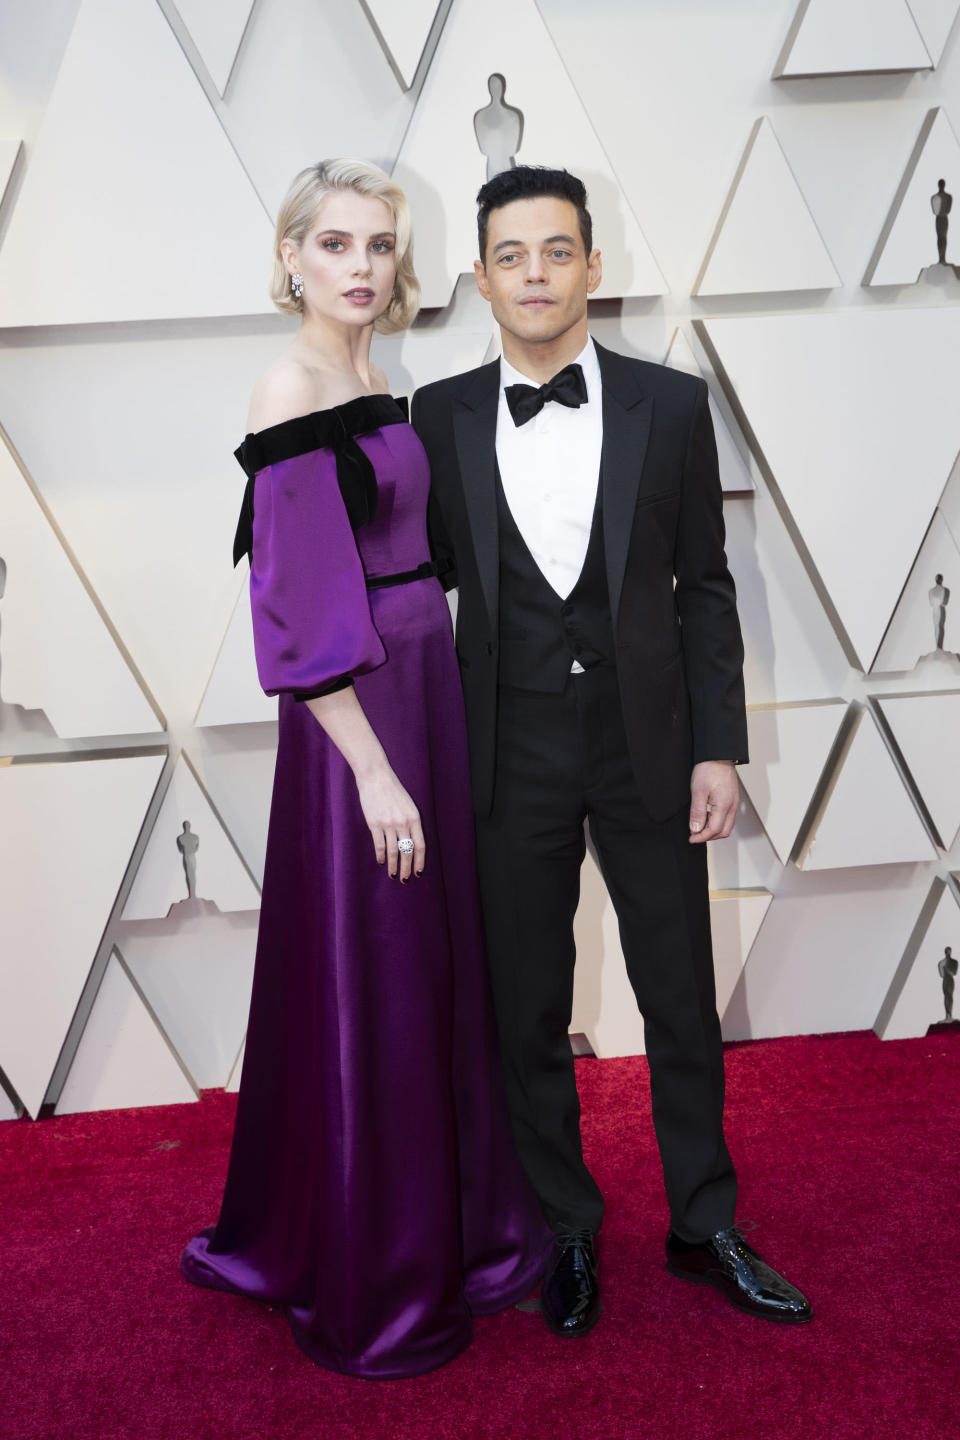 """<p>The """"Bohemian Rhapsody"""" costars and off-screen couple arrived hand-in-hand in a purple Rodarte gown and a classic tuxedo by Saint Laurent. (Image via Getty Images) </p>"""